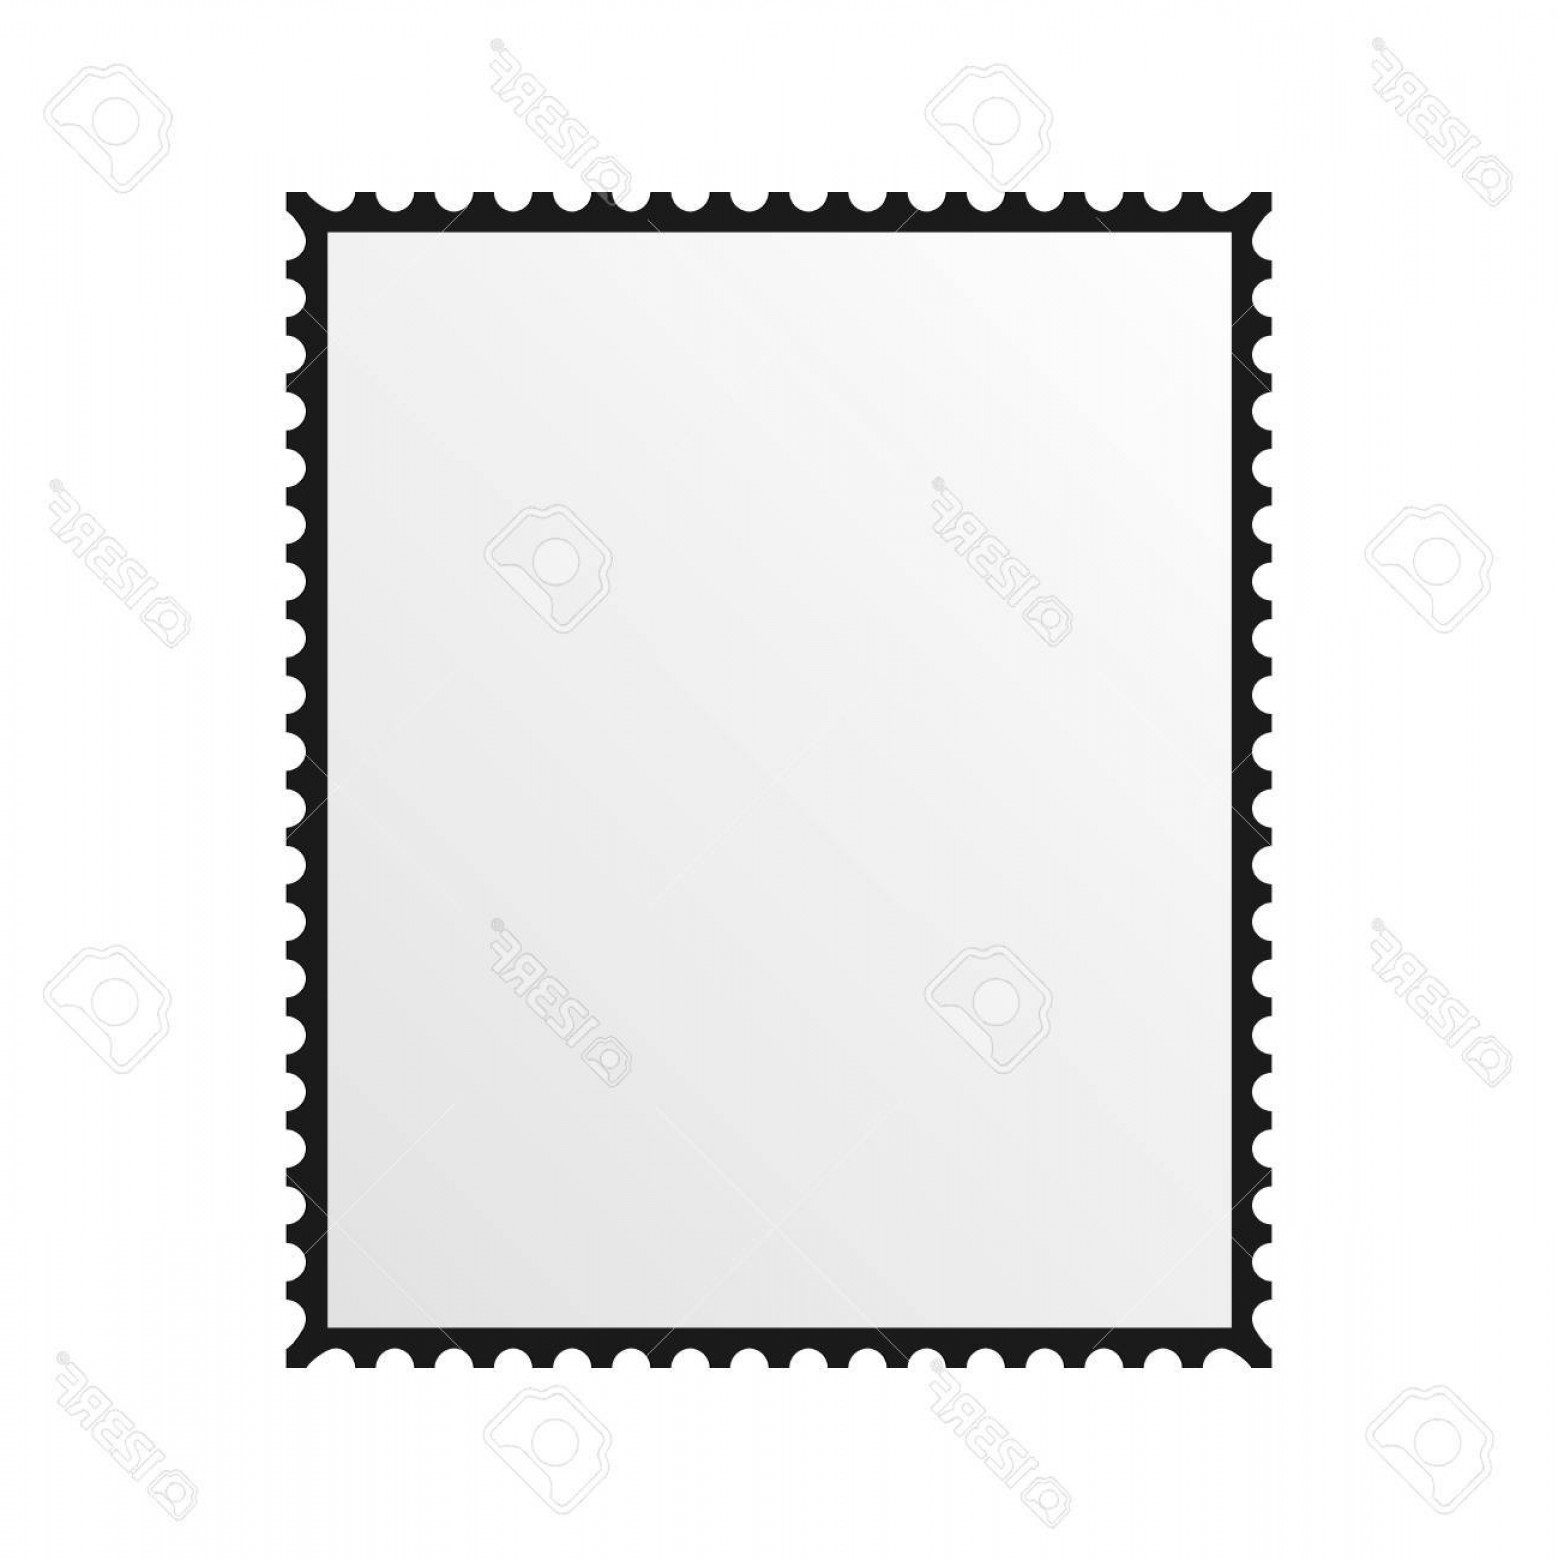 Photostock Vector Postage Stamp Vector Blank Mockup Square.